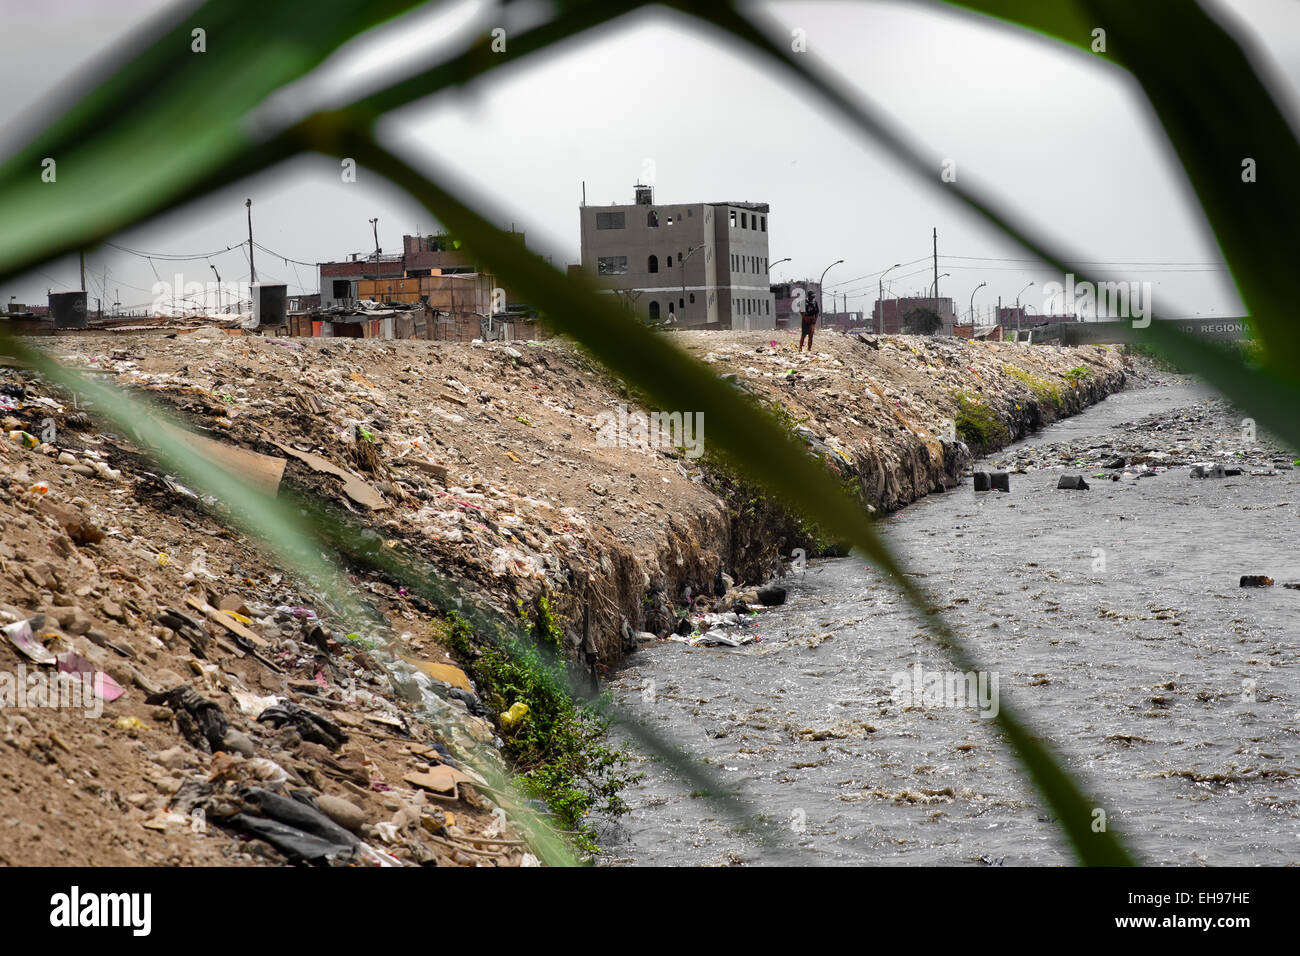 Waste and garbage are seen on the banks of Río Chillón, a heavily contaminated river flowing through Ventanilla, - Stock Image